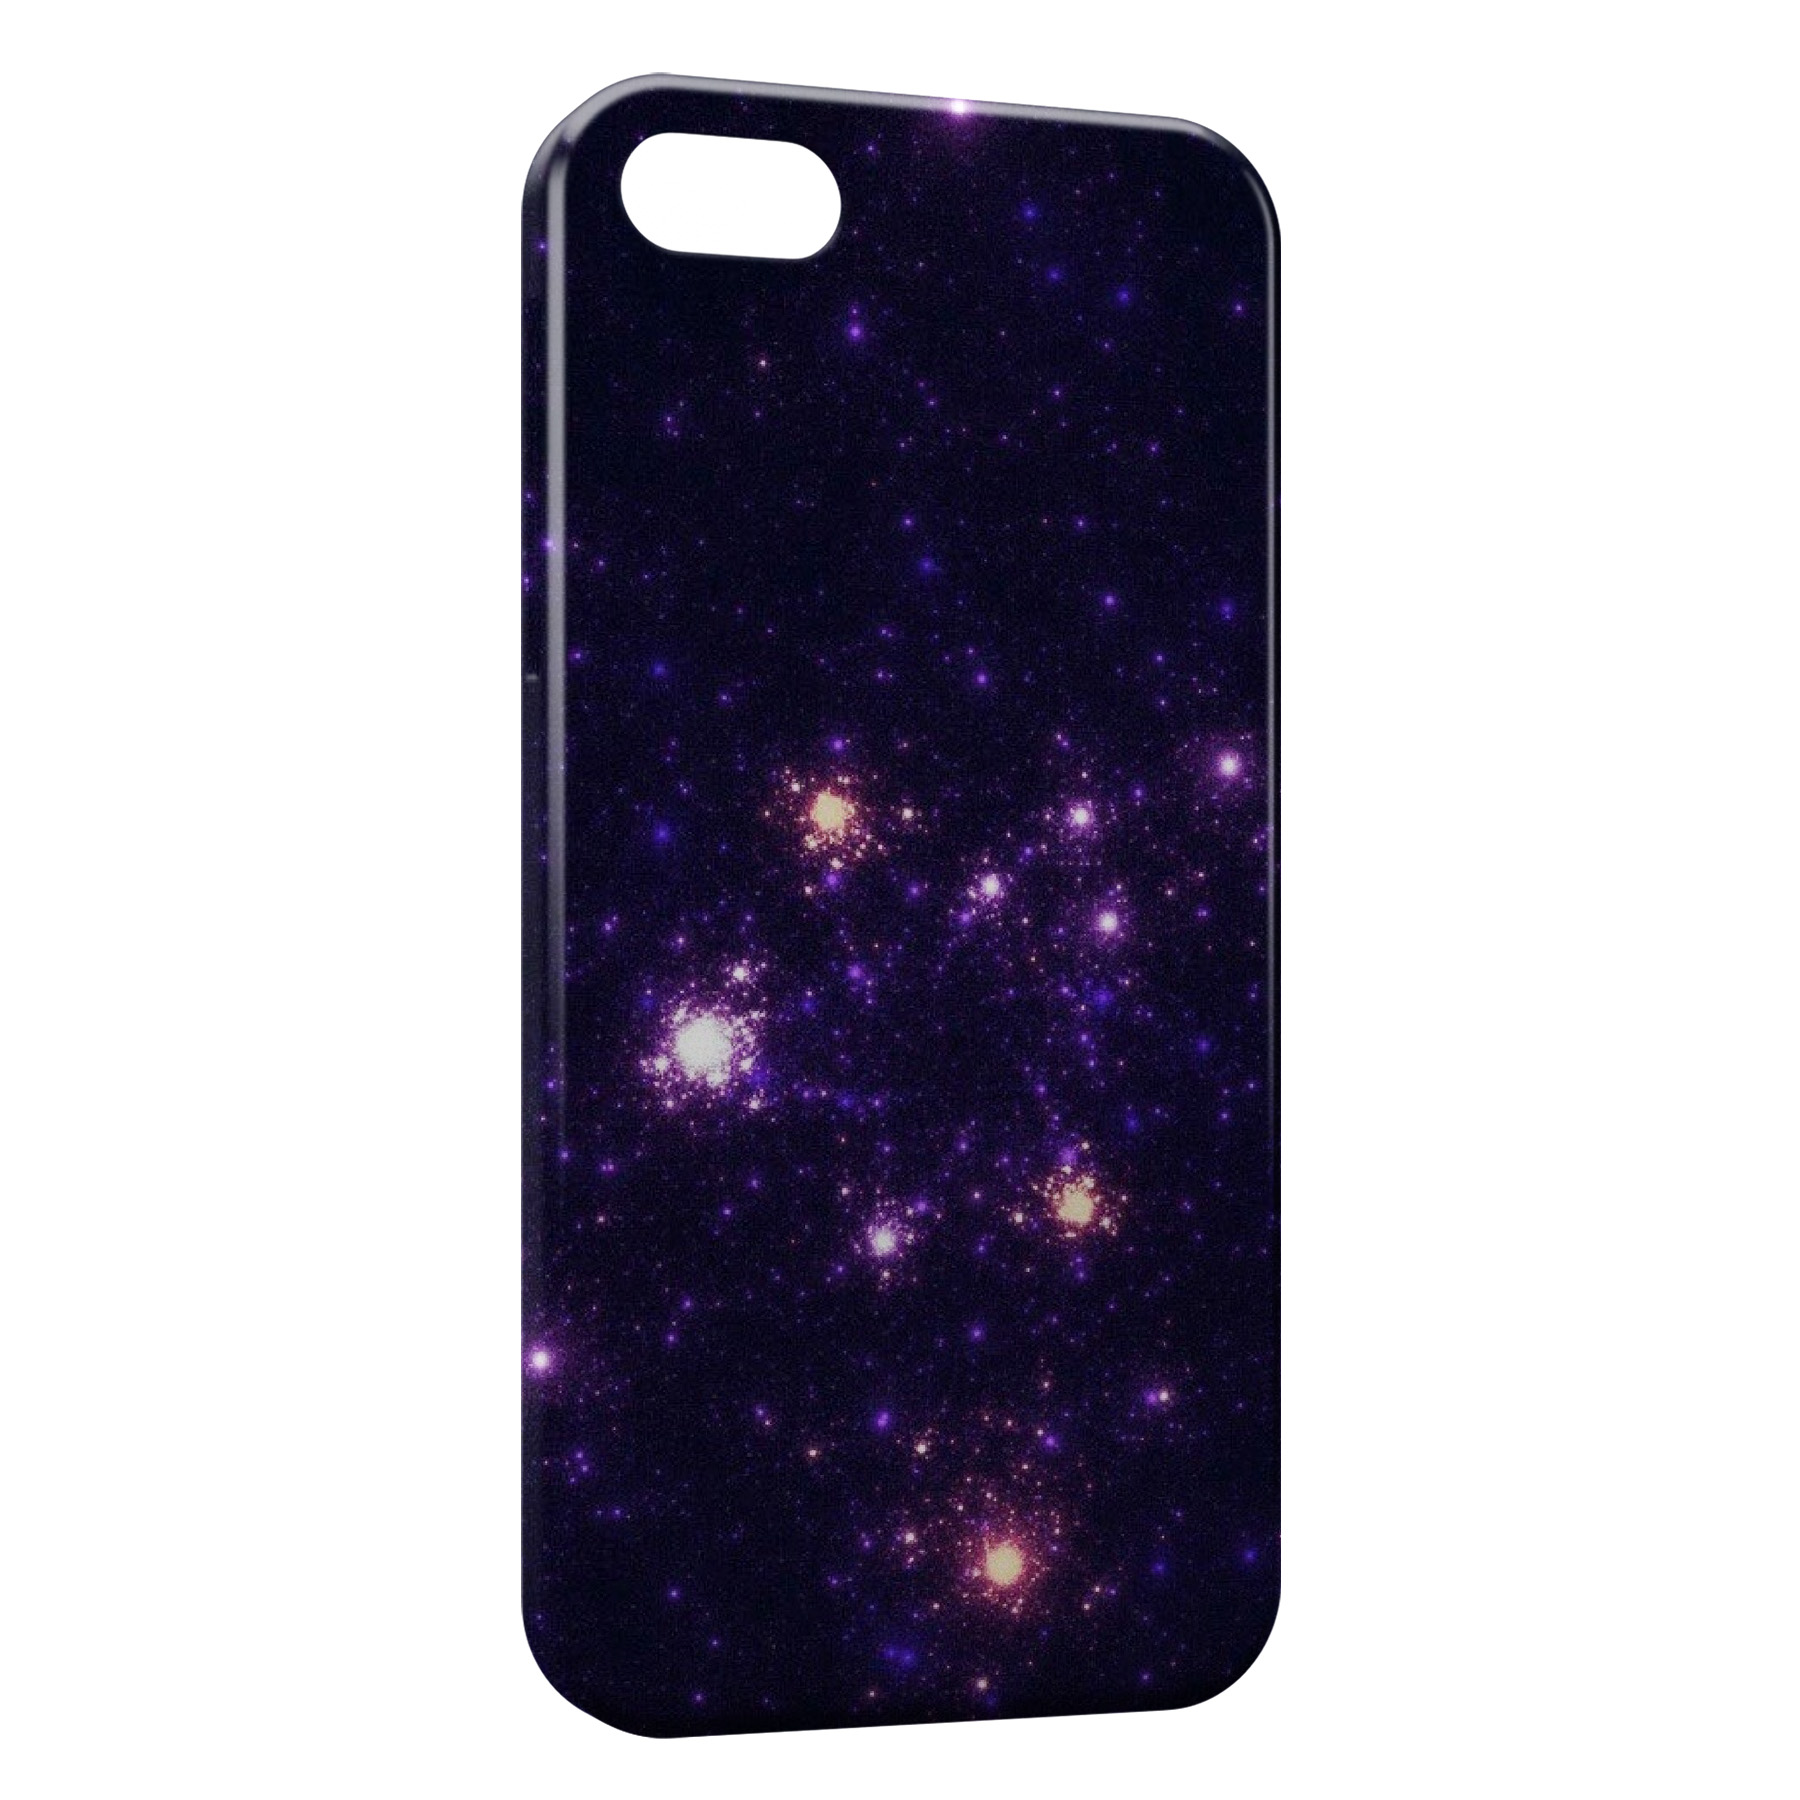 Coque iPhone 6 6S Galaxy 1